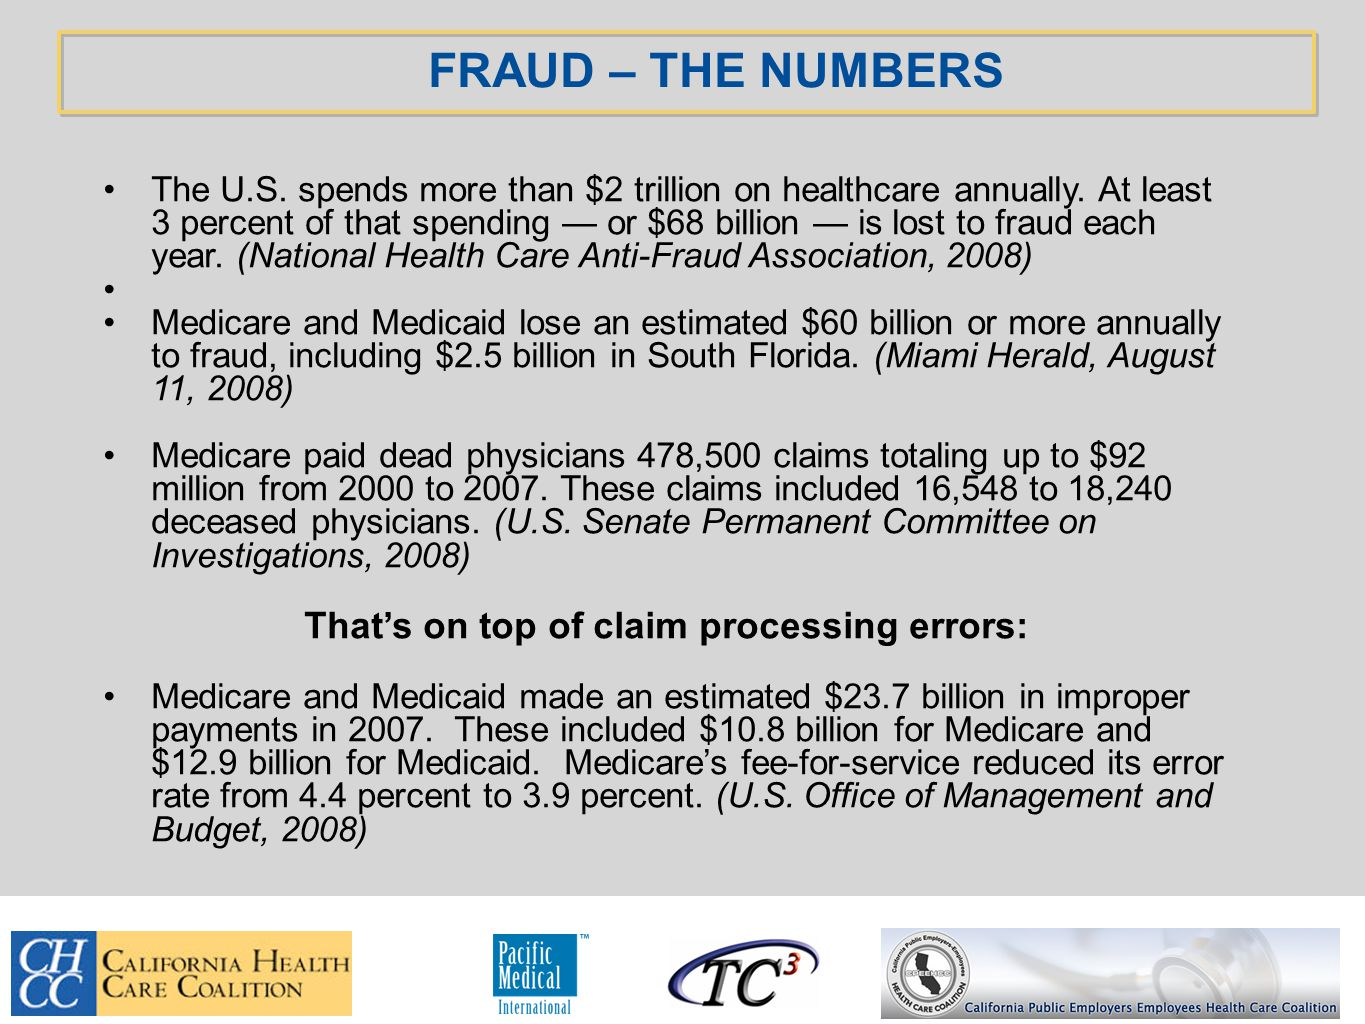 FRAUD – THE NUMBERS The U.S. spends more than $2 trillion on healthcare annually.